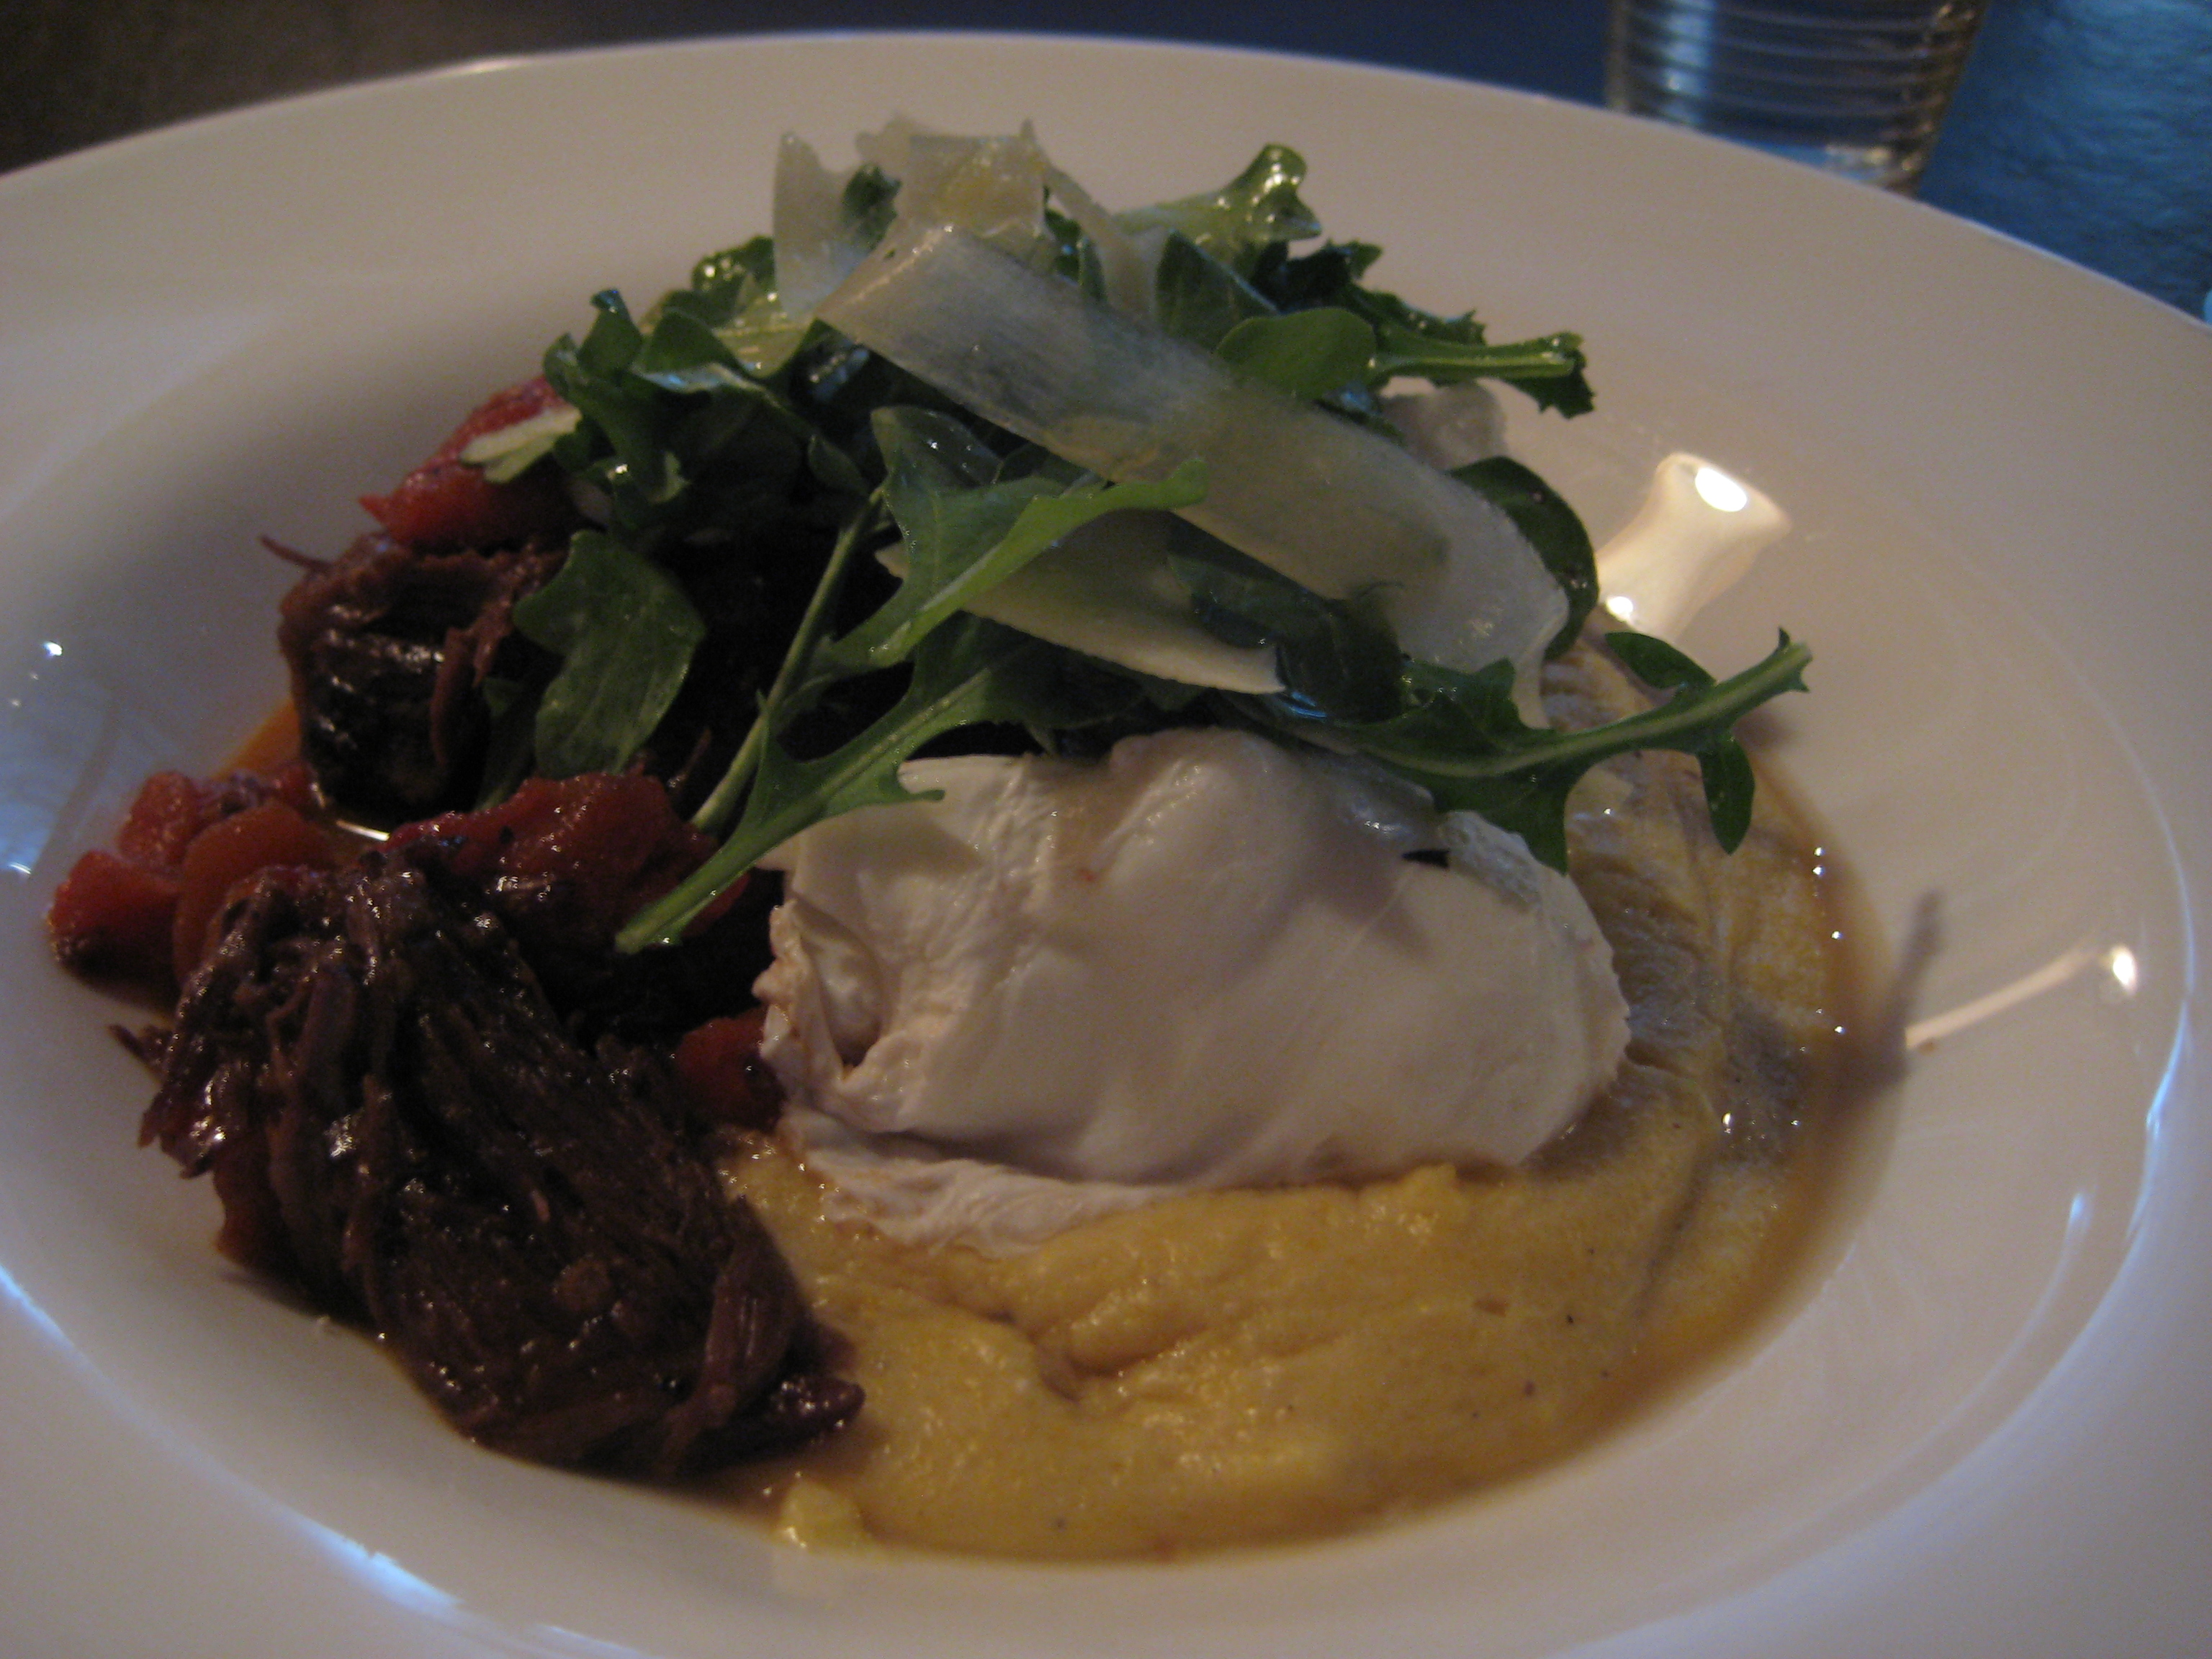 Braised beef, poached eggs, parmesan polenta